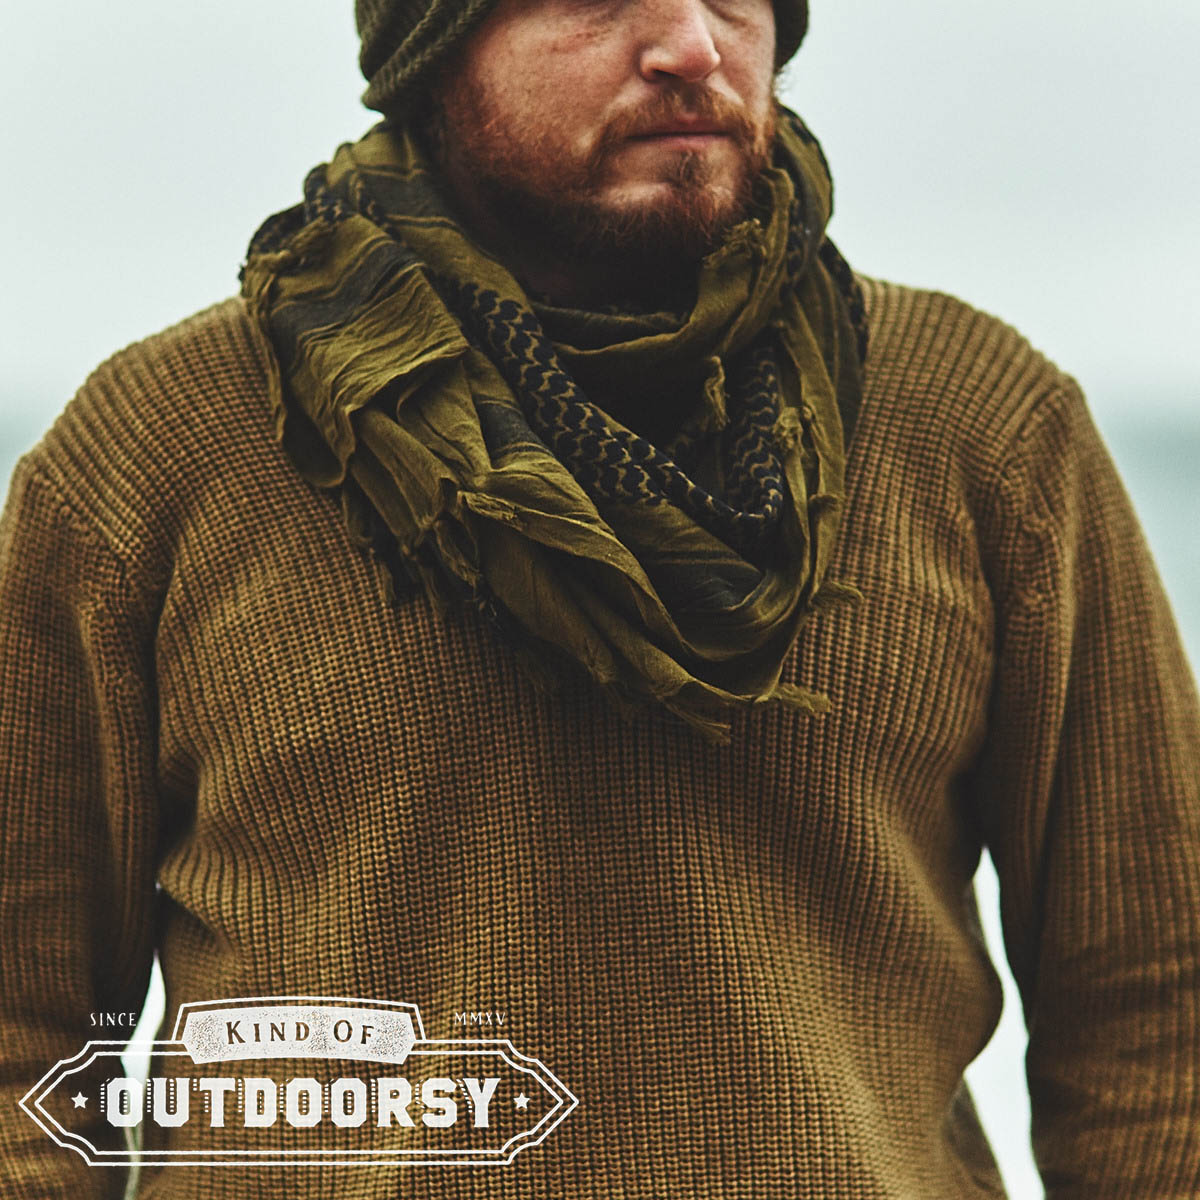 Heavyweight Shemagh Scarf In Olive Drab Black Kind Of